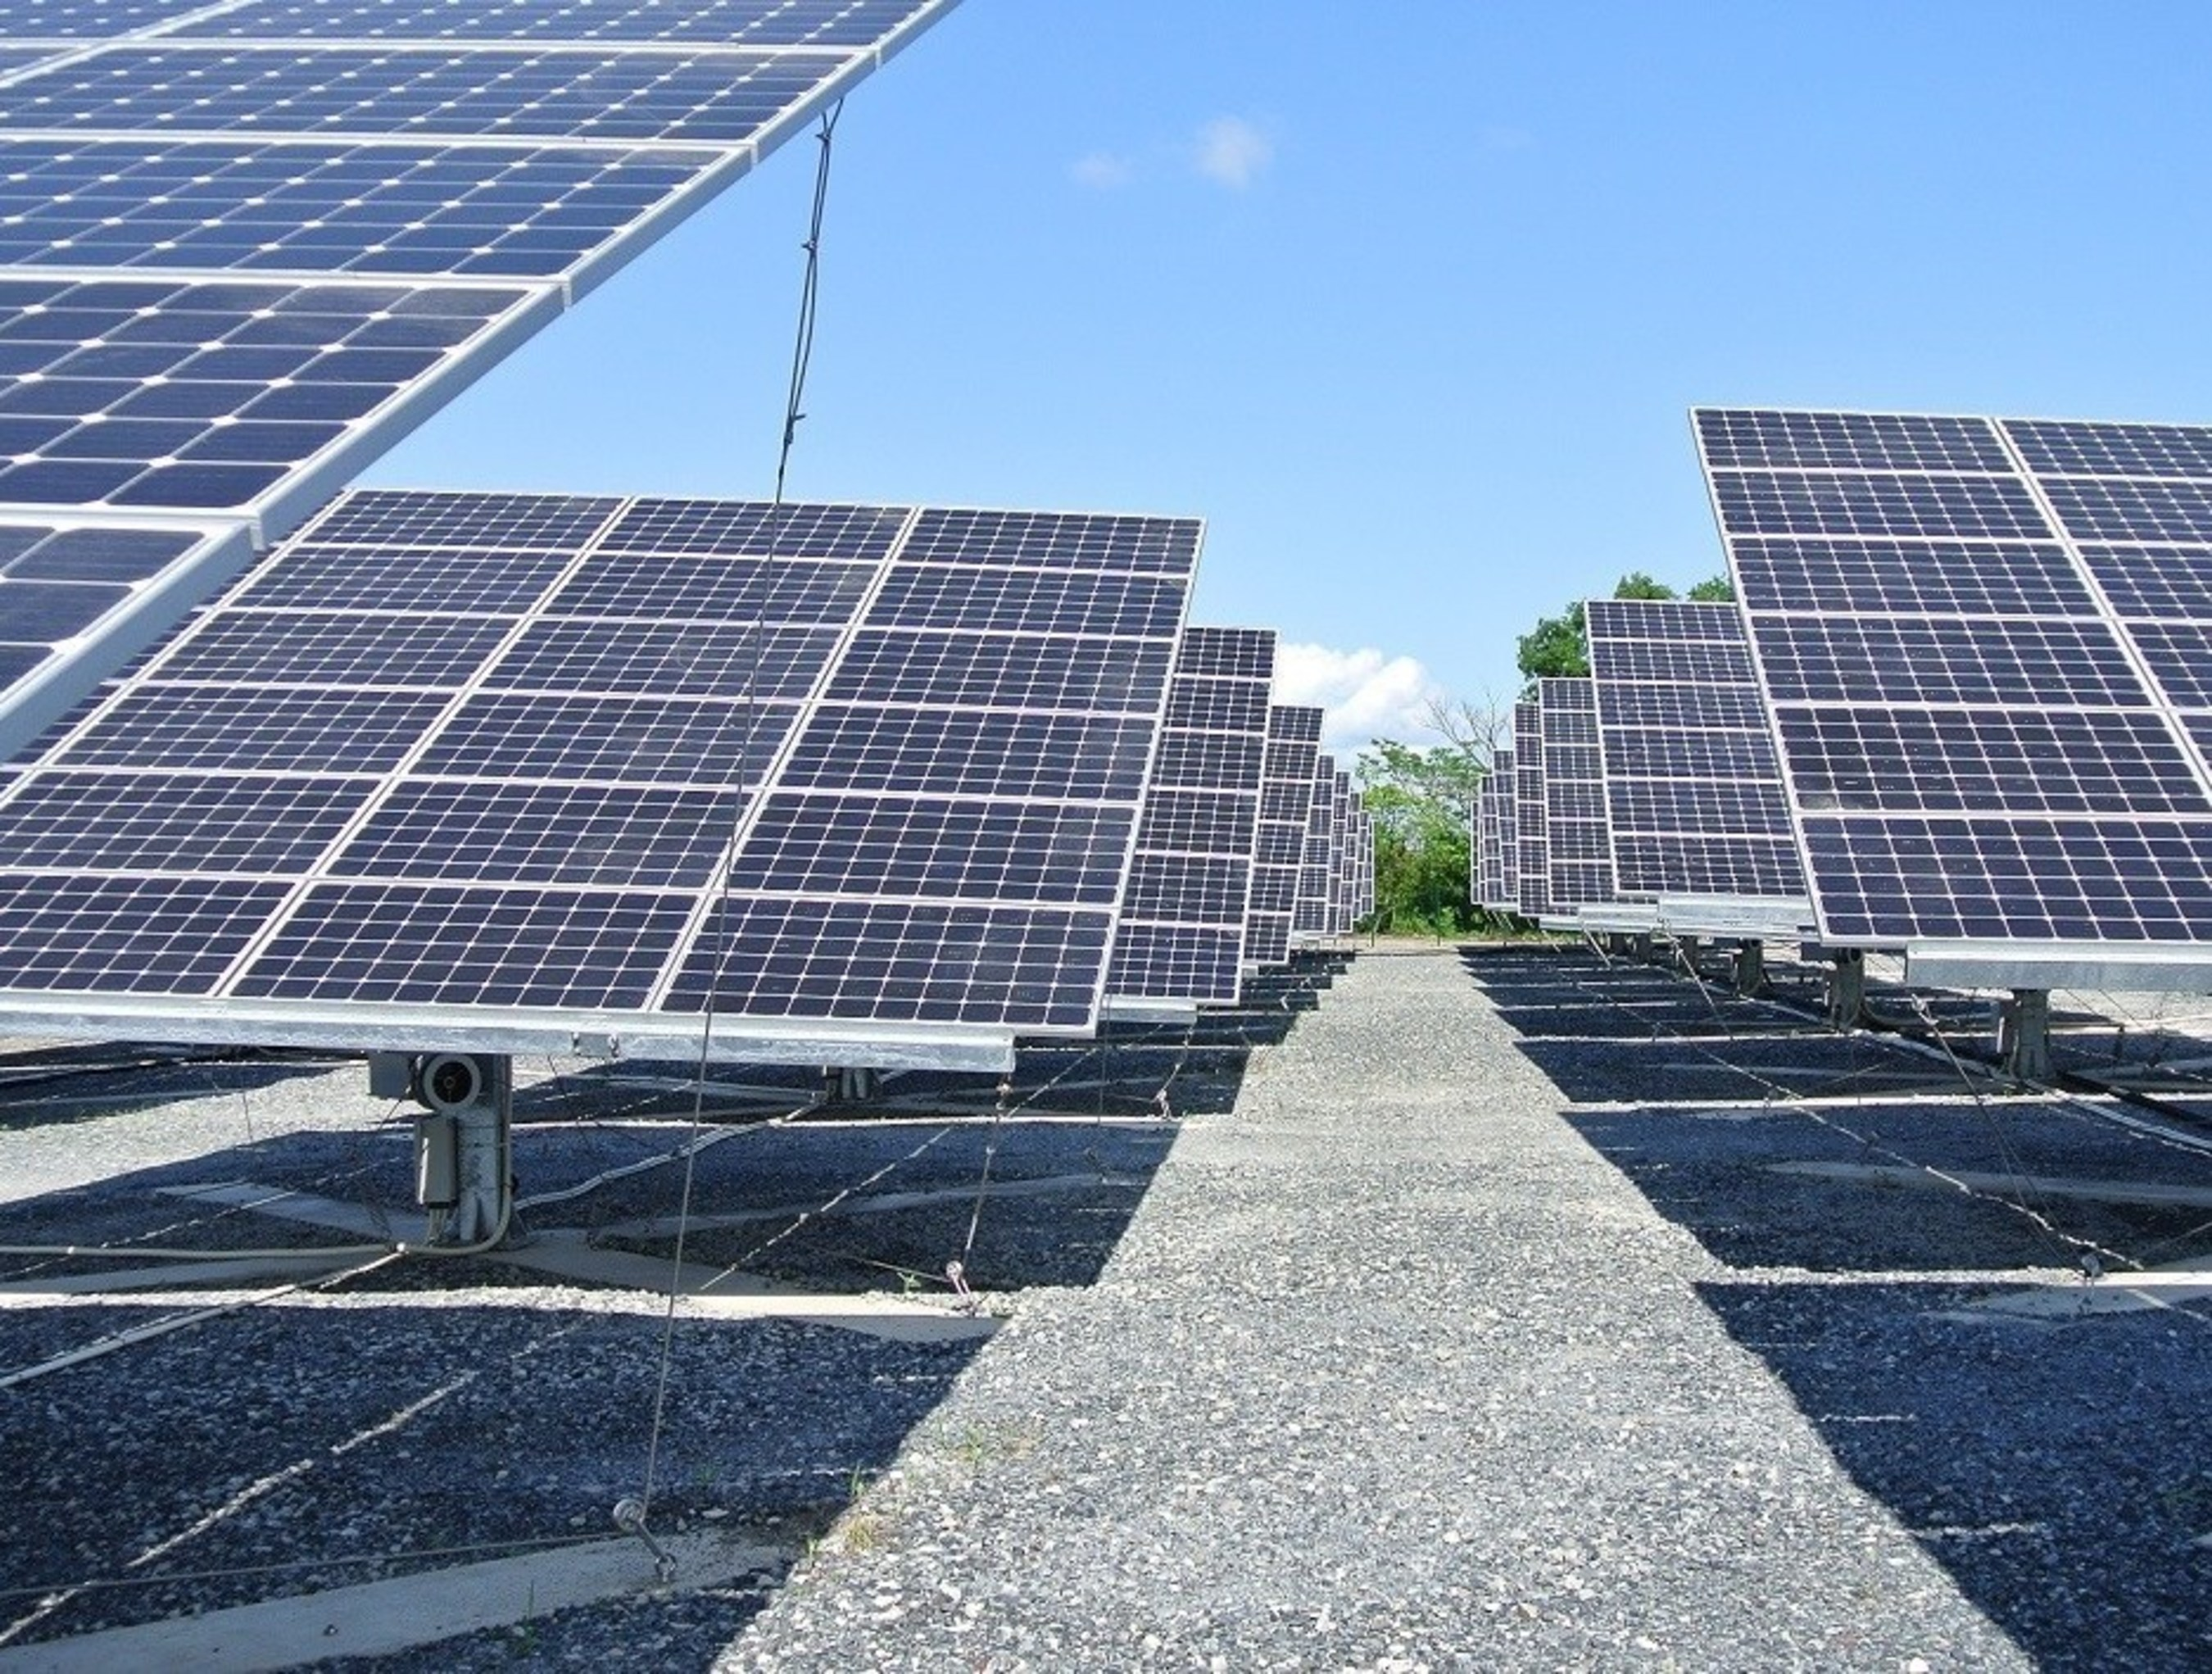 A Flexible Dual-axis Solar Tracking System is able to Survive in Extreme Conditions